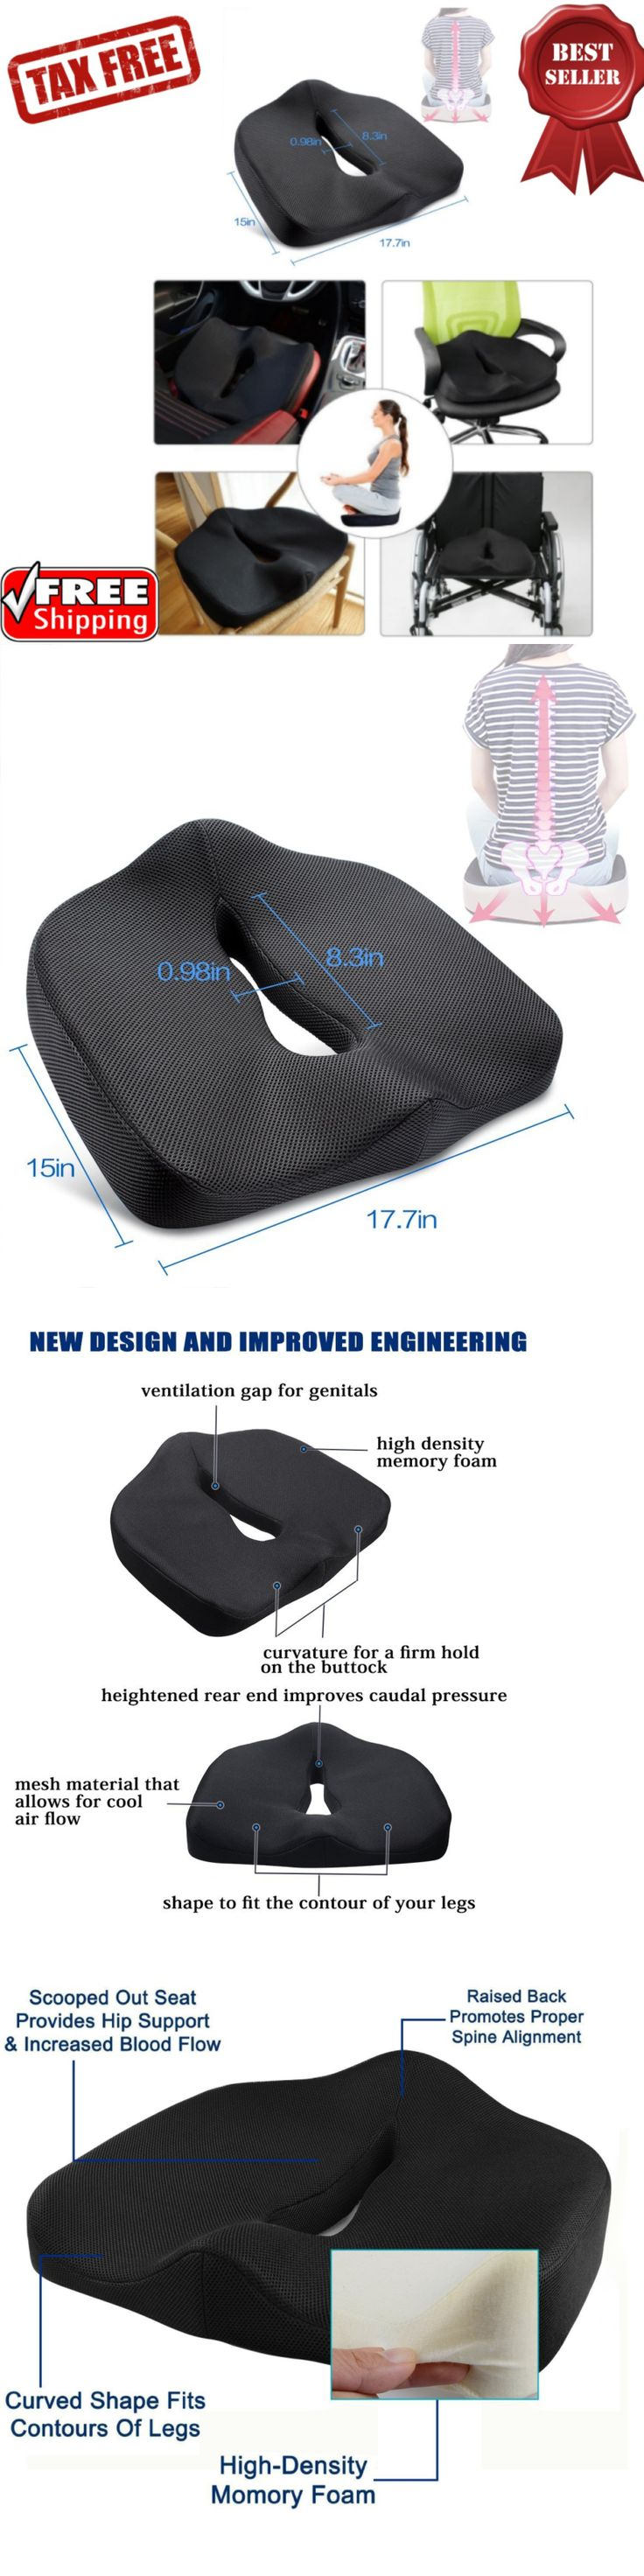 Seat and Posture Cushions: Orthopedic Foam Seat Cushion For Sciatica Lower Back And Tailbone W Wedges Pillow -> BUY IT NOW ONLY: $43.79 on eBay!